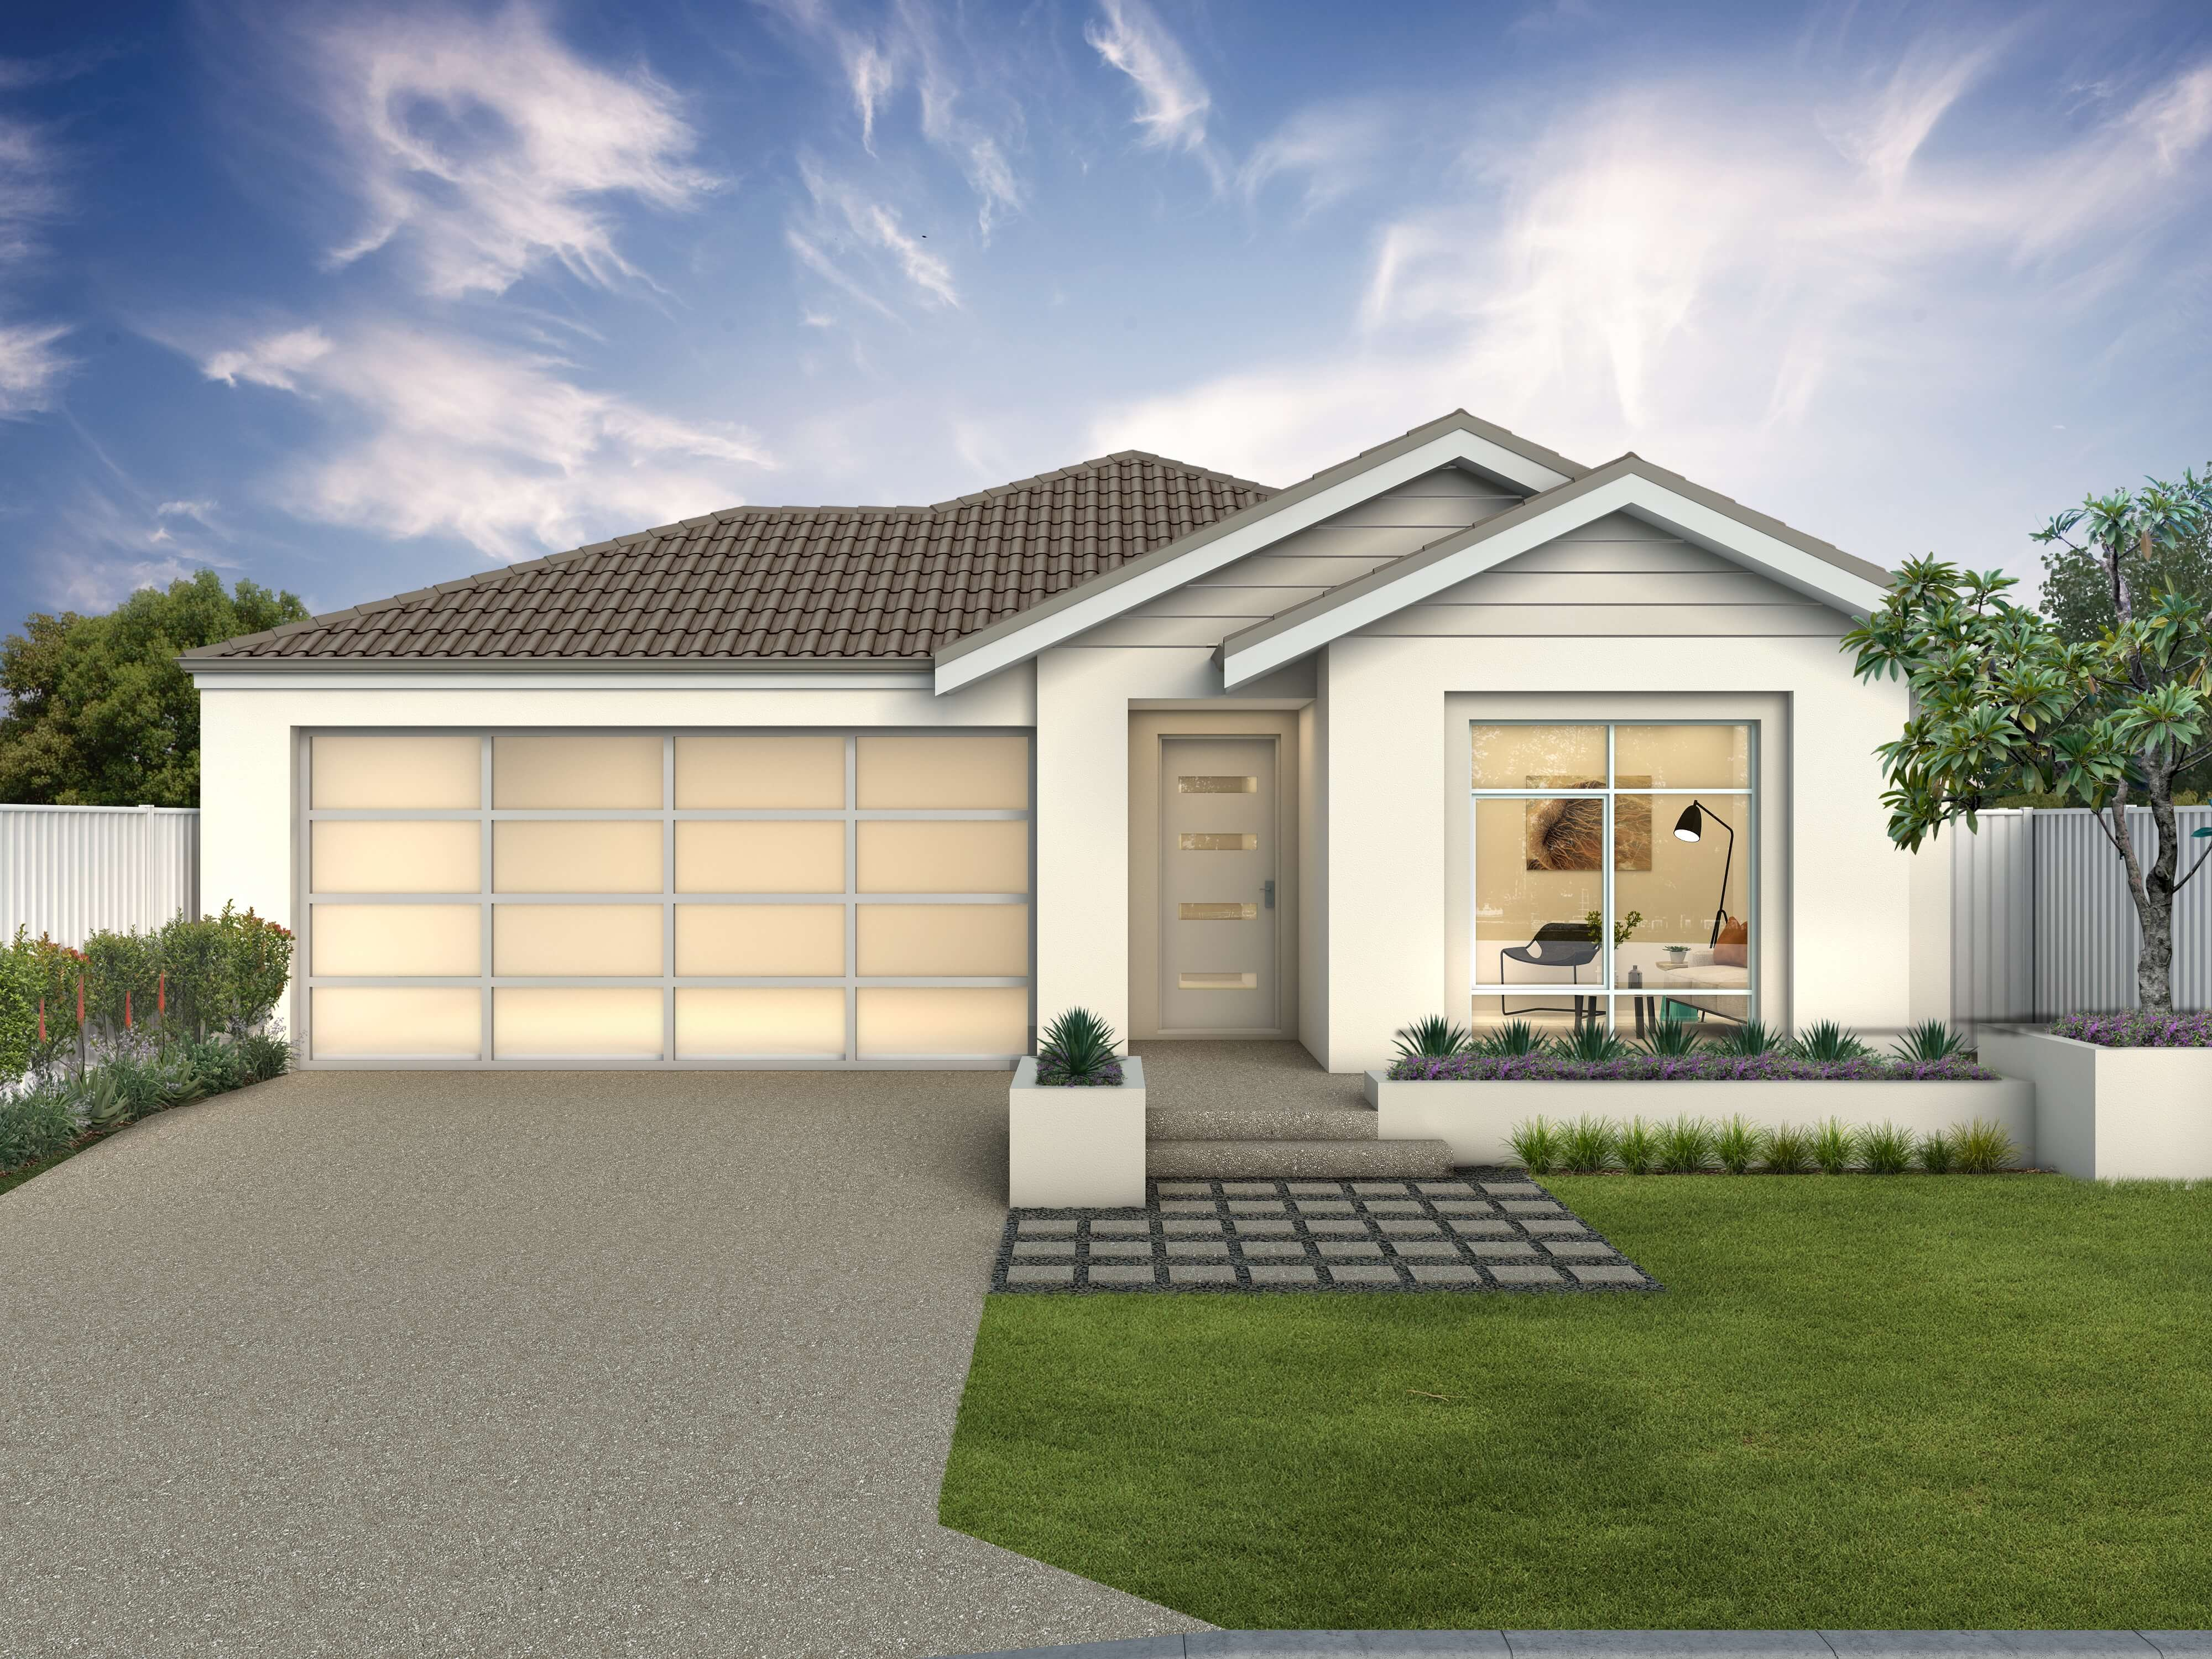 The Beaufortia, a new home design by Move Homes for Perth families and first time home buyers